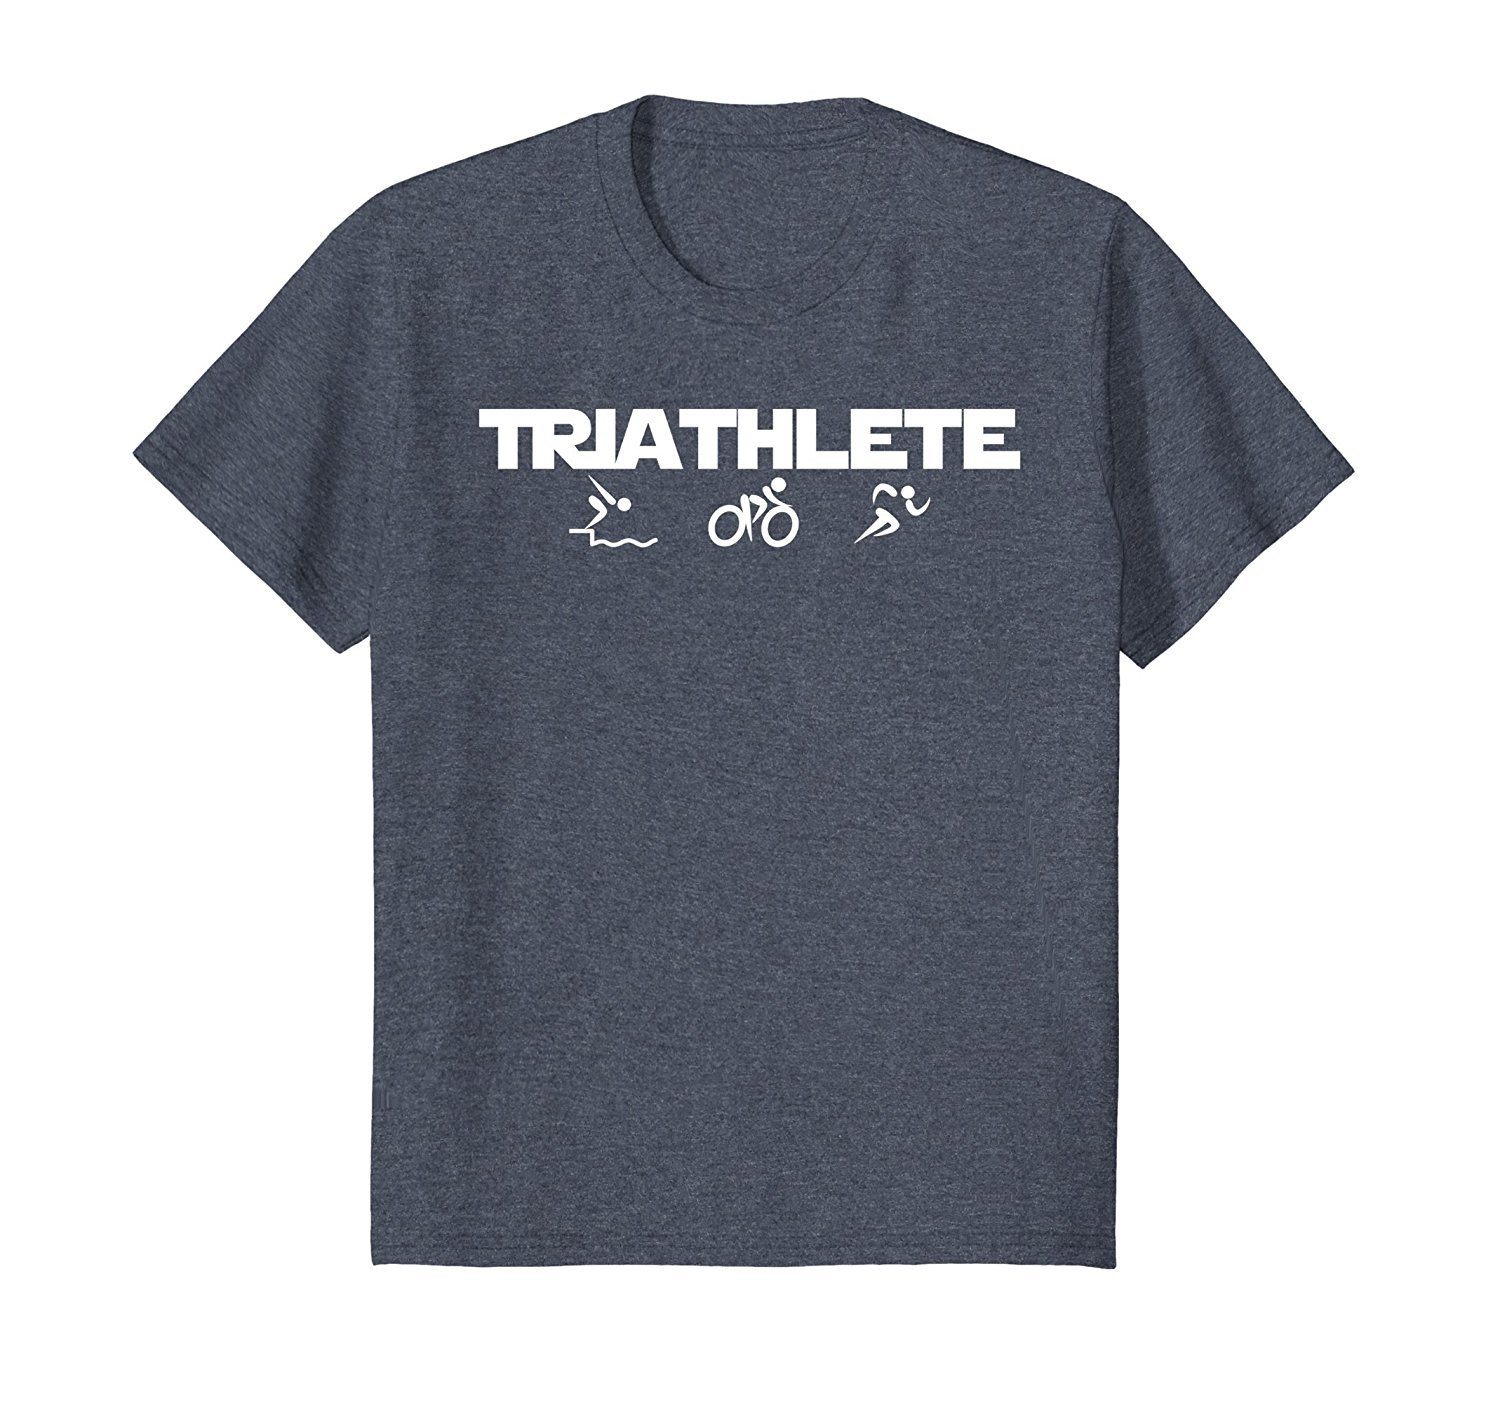 2019 Nieuwe Zomer Casual T shirt Triathlete Swimminger Biker Loopt Triathlon T shirt in T Shirts from Men 39 s Clothing